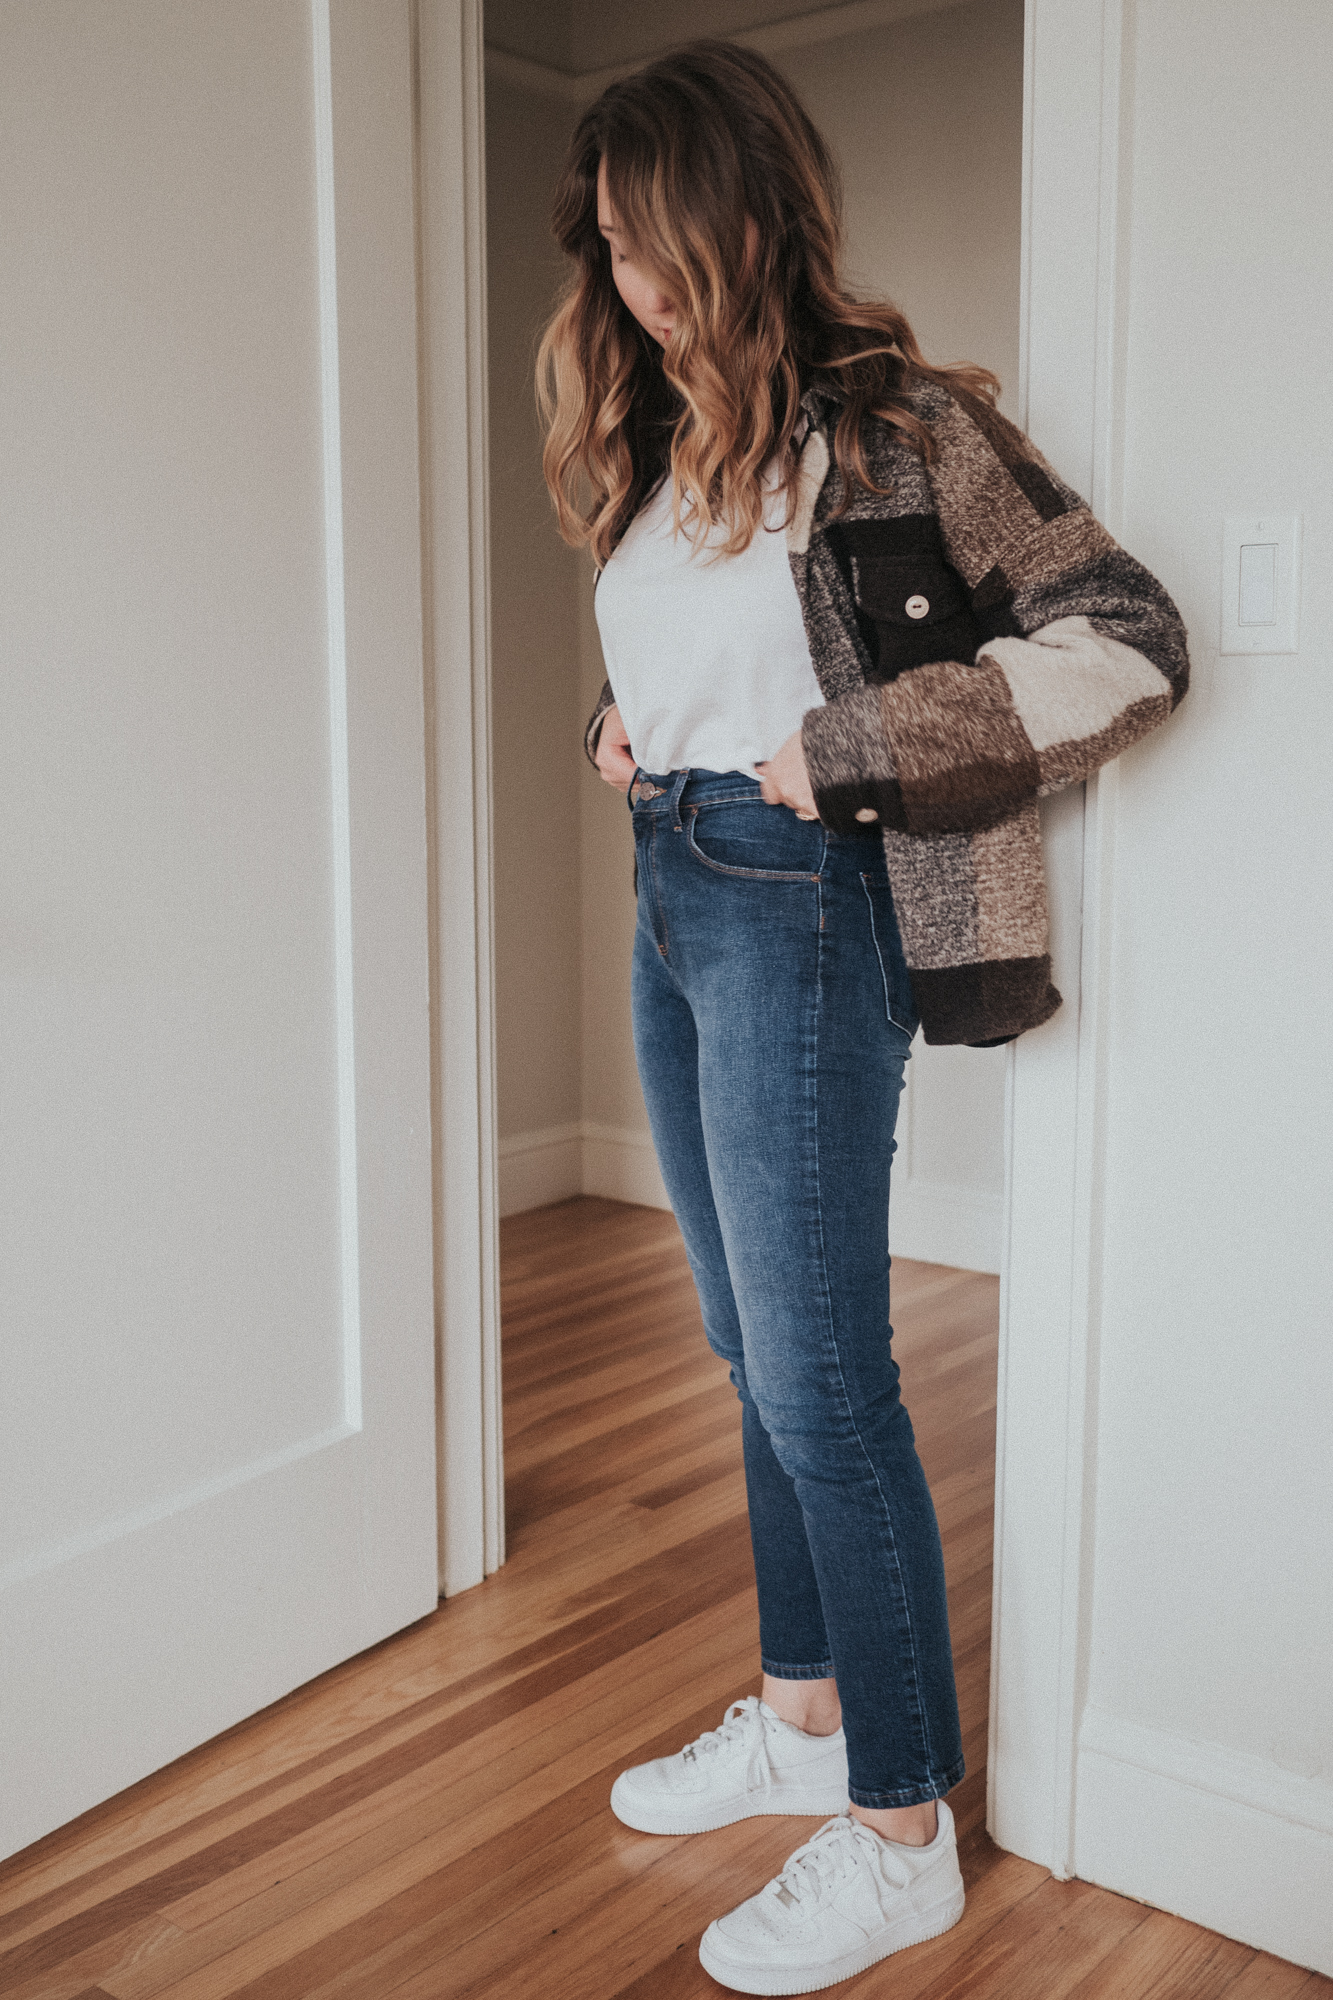 Erin Pollard stands in a doorway wearing Mott & Bow cropped white tee and mom jeans | Wolf & Stag